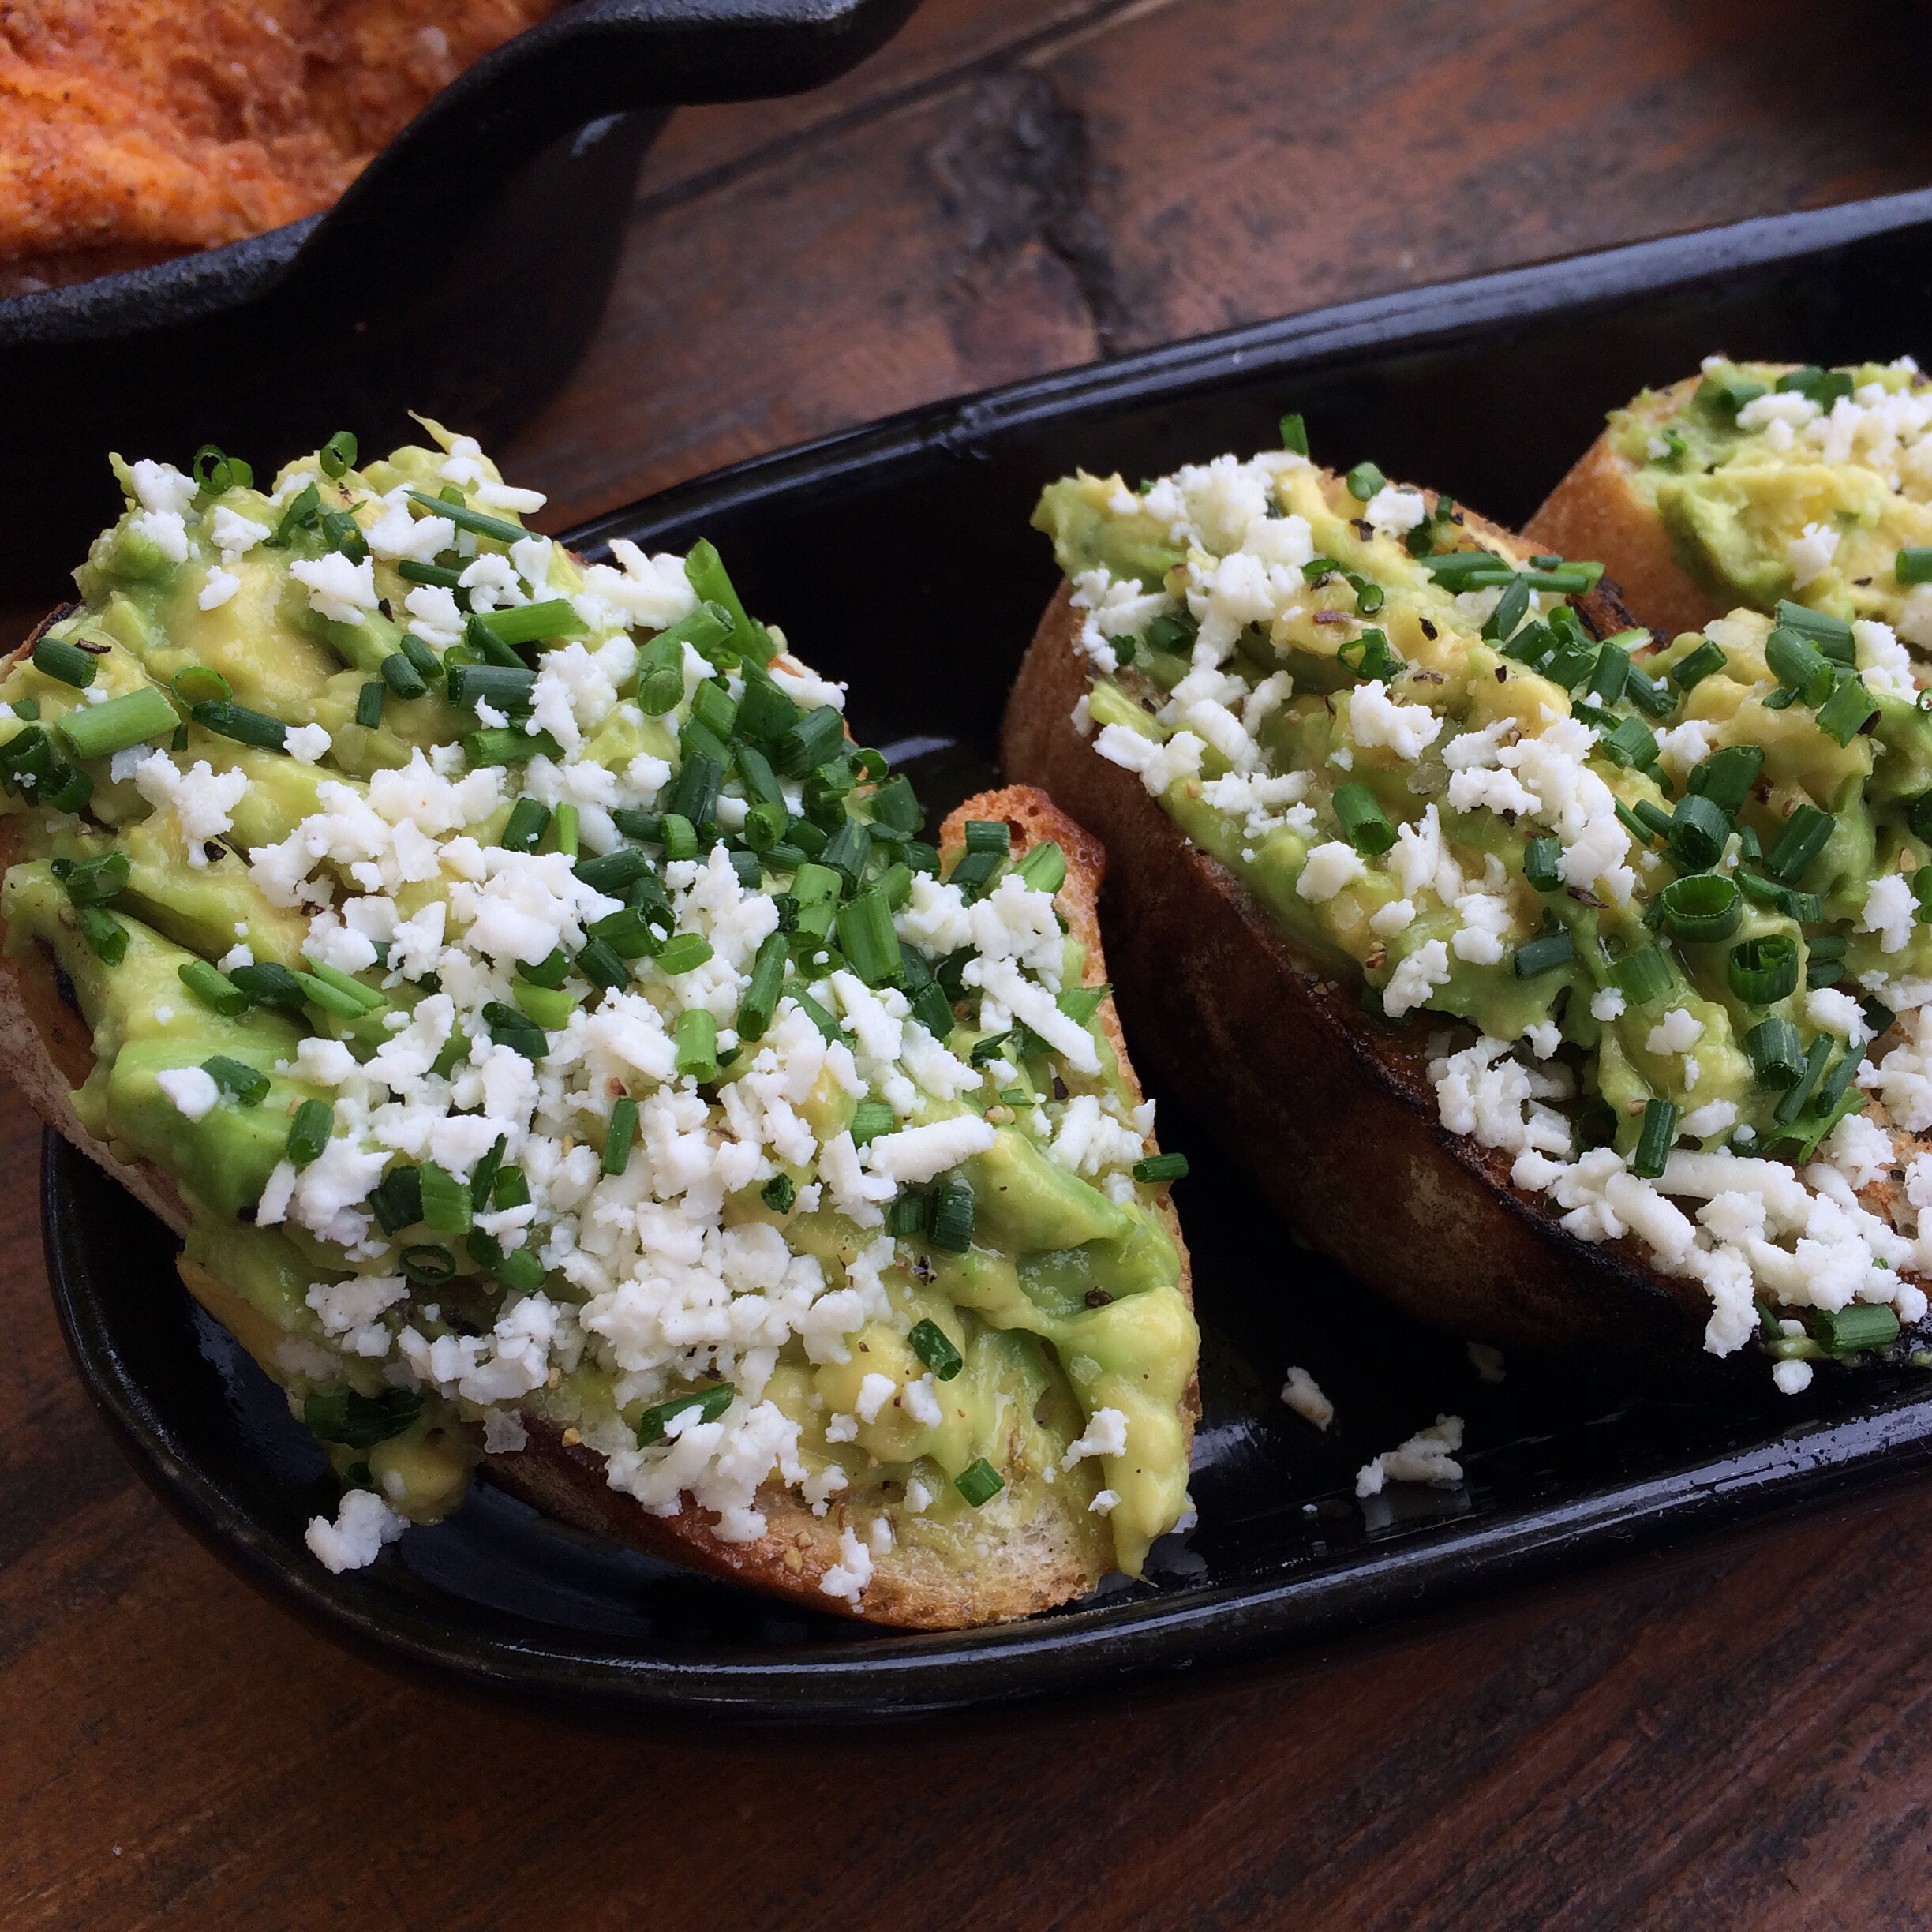 Avocado Toasts at the Jam and Toast brunch at The Rustic